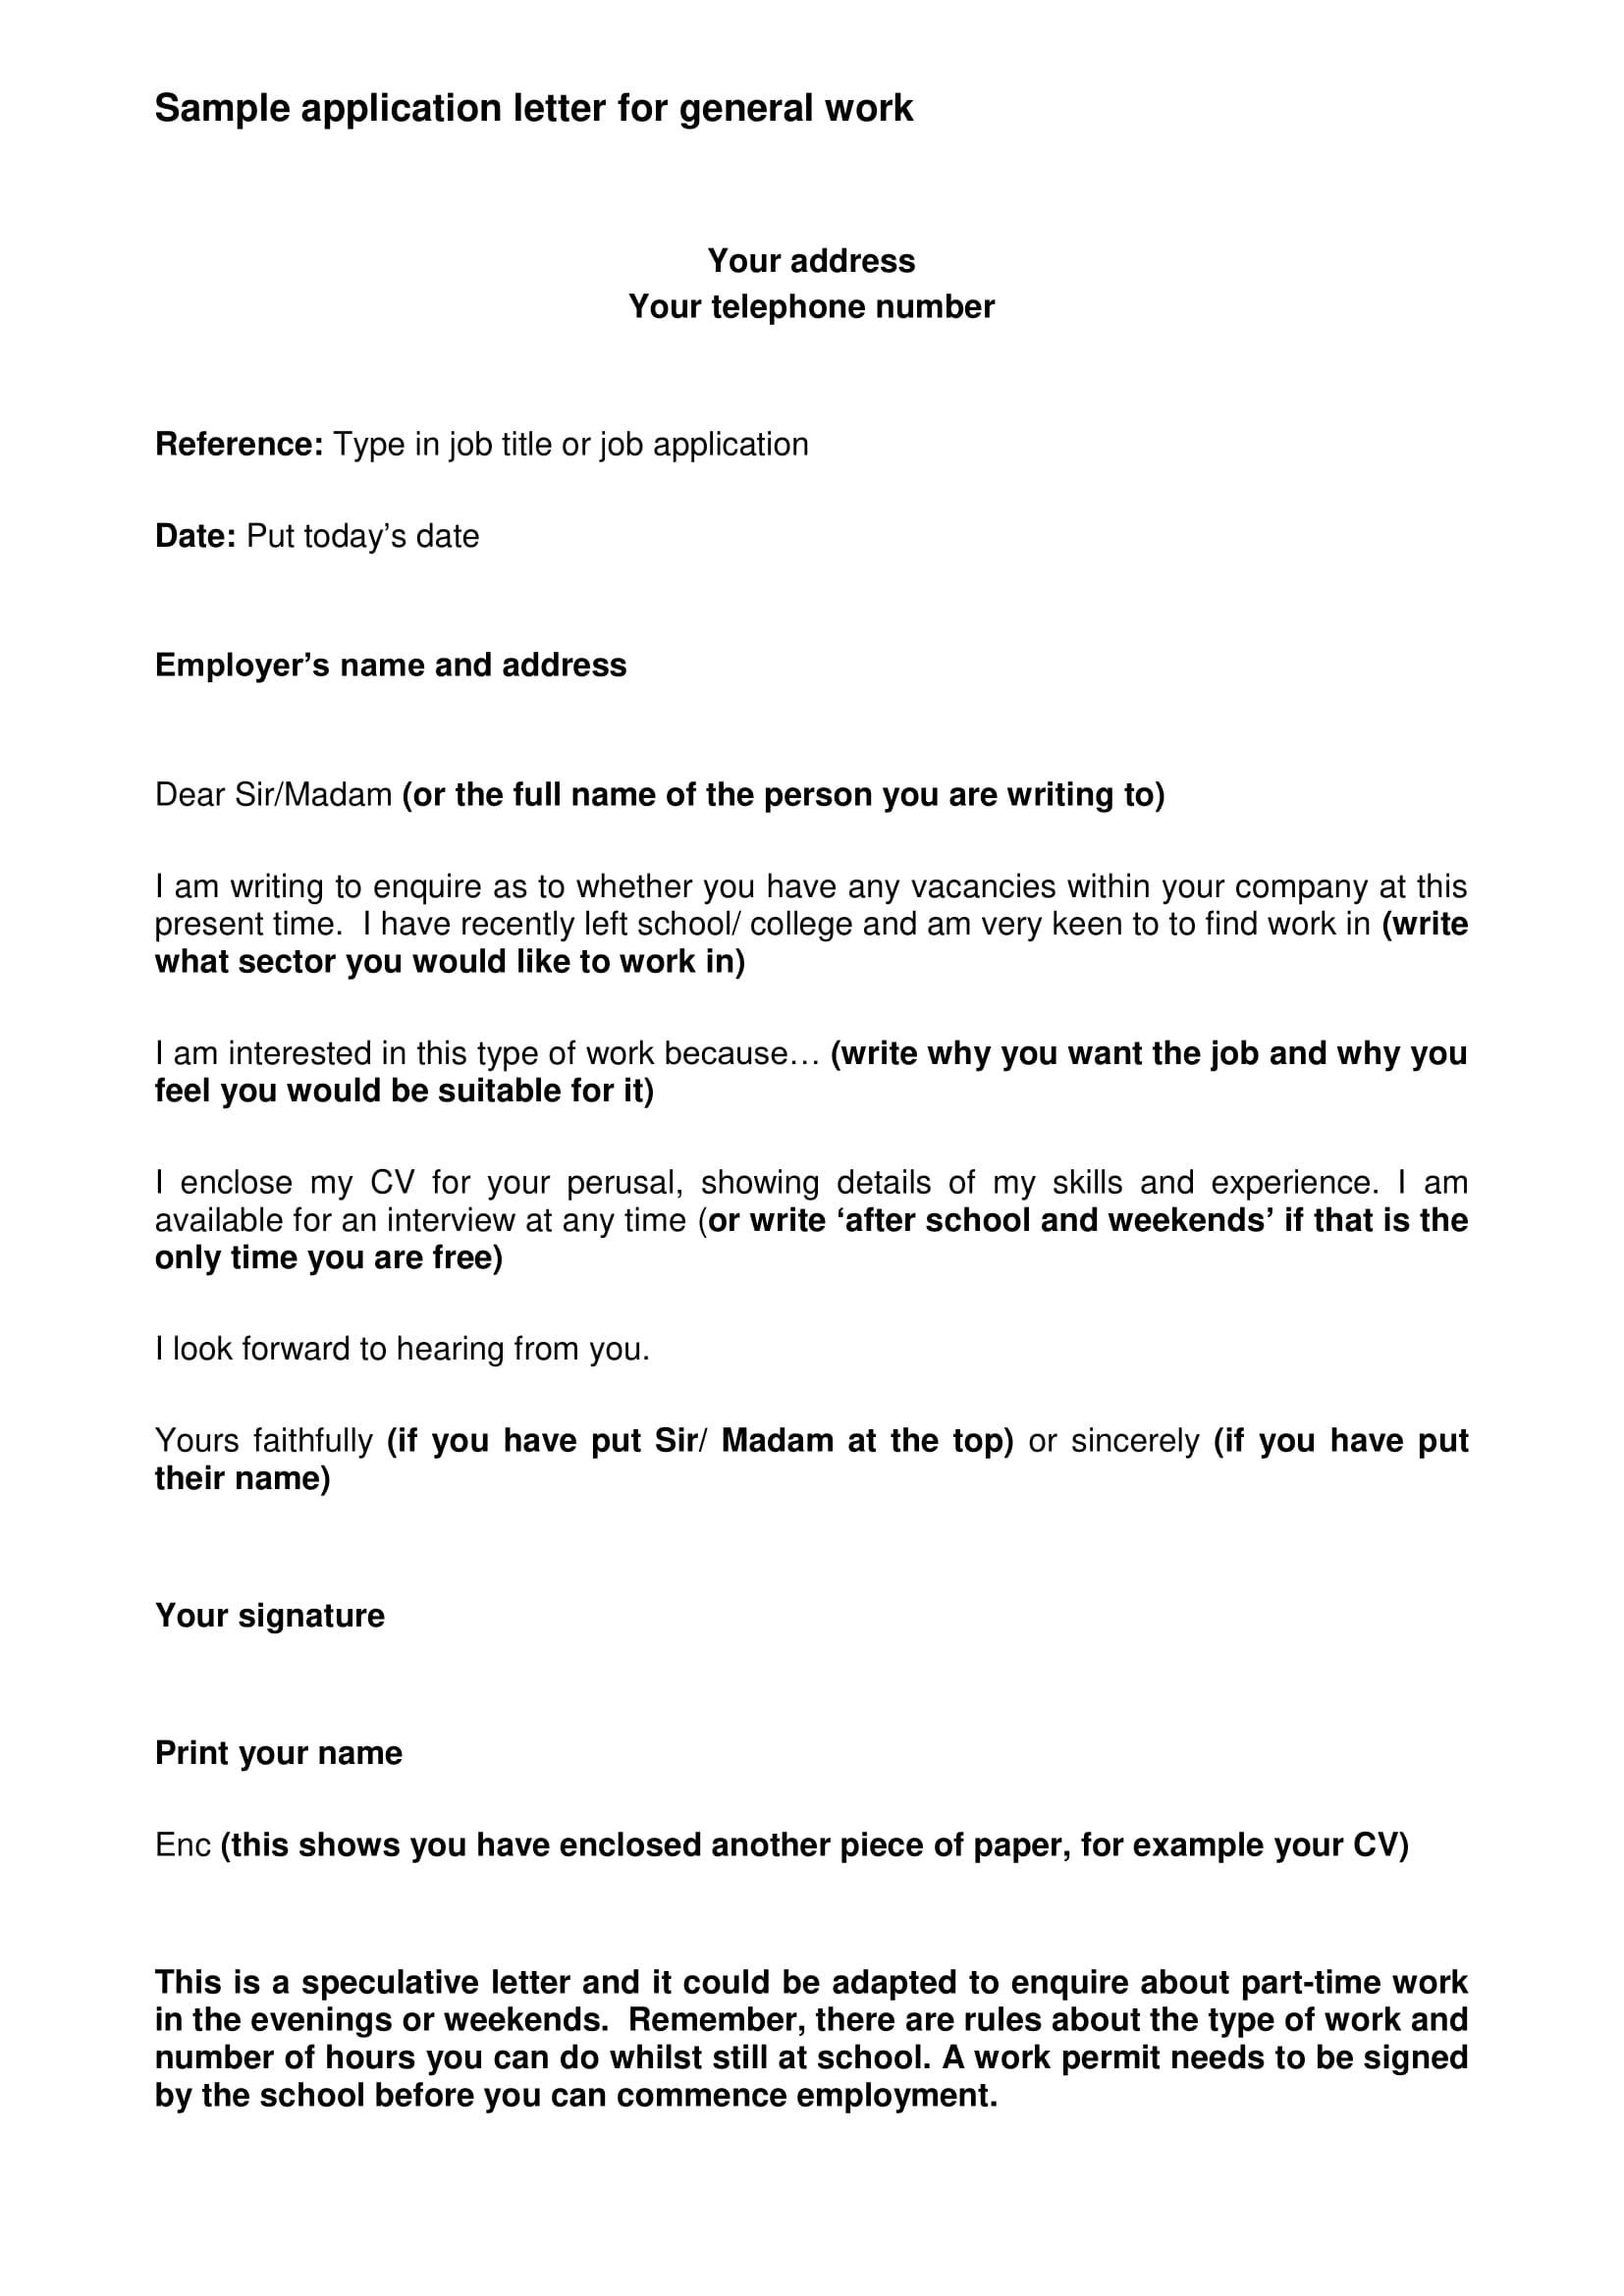 example generic application letter 1